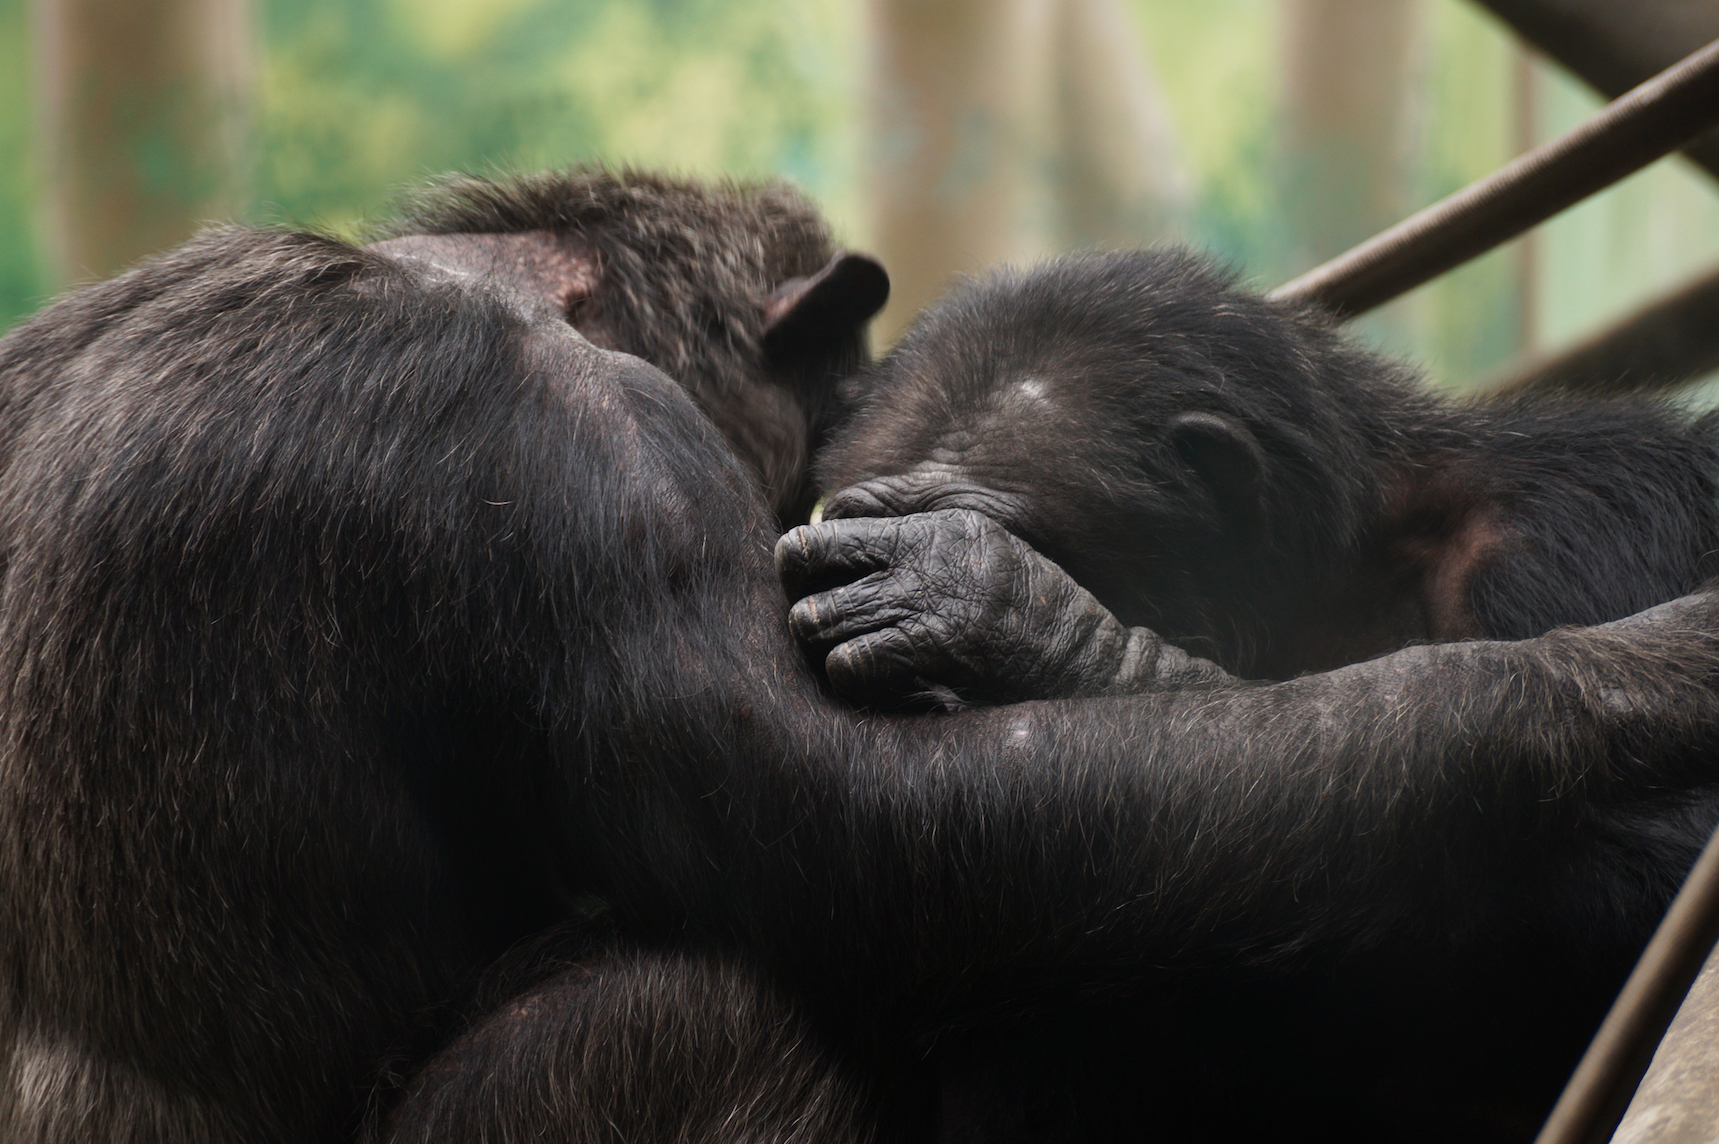 Humans, like chimpanzees, console their threatened peers out of empathy, according to a new study published in PLOS ONE.